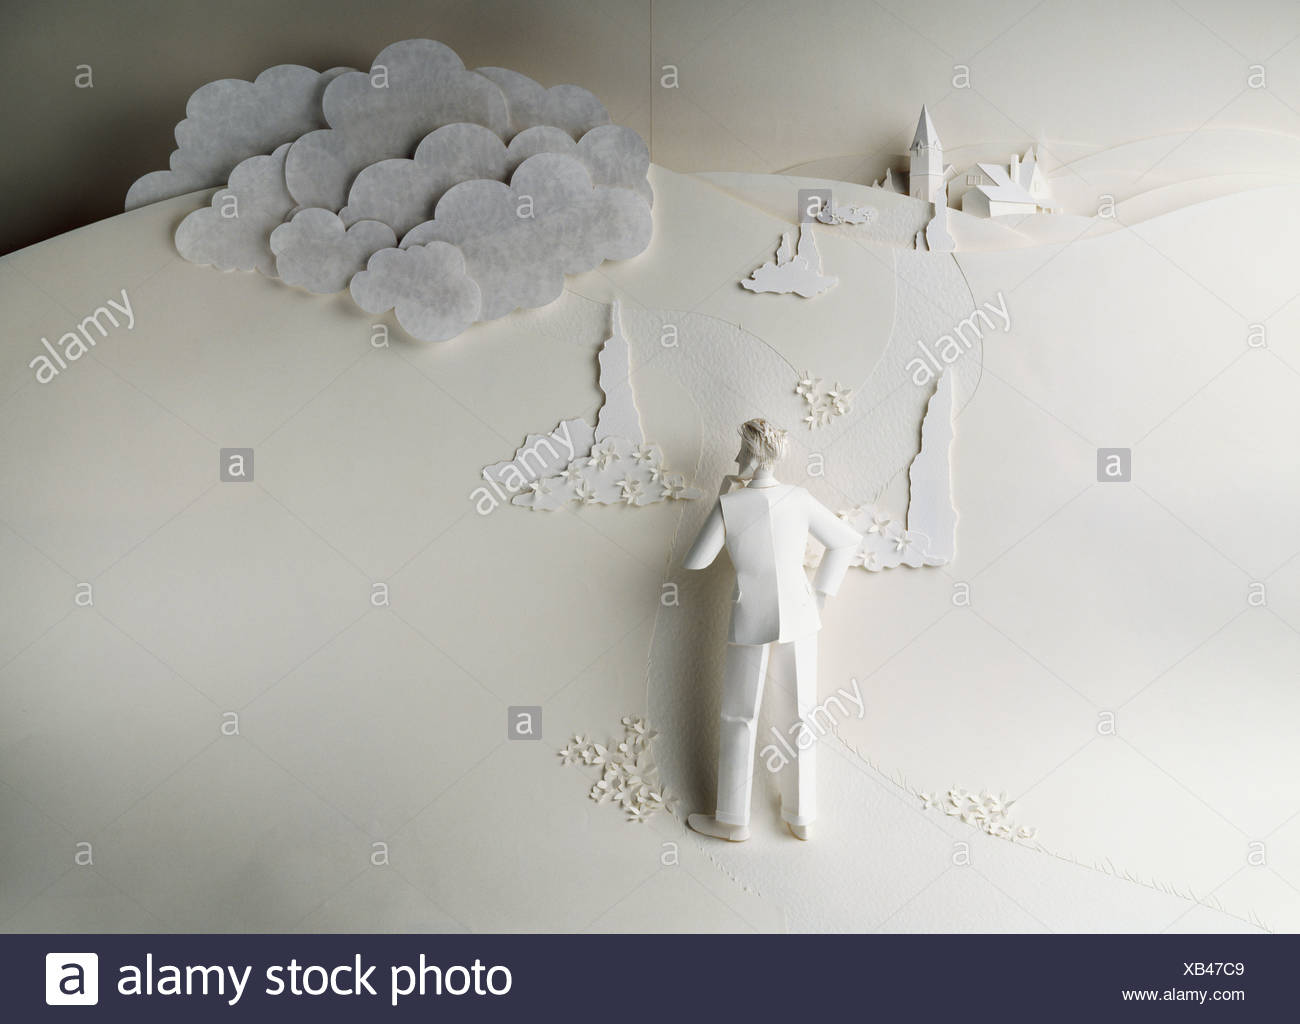 Paper artwork; 3 dimensional paper man standing with hand on hip, other hand on chin, puzzled stance - Stock Image